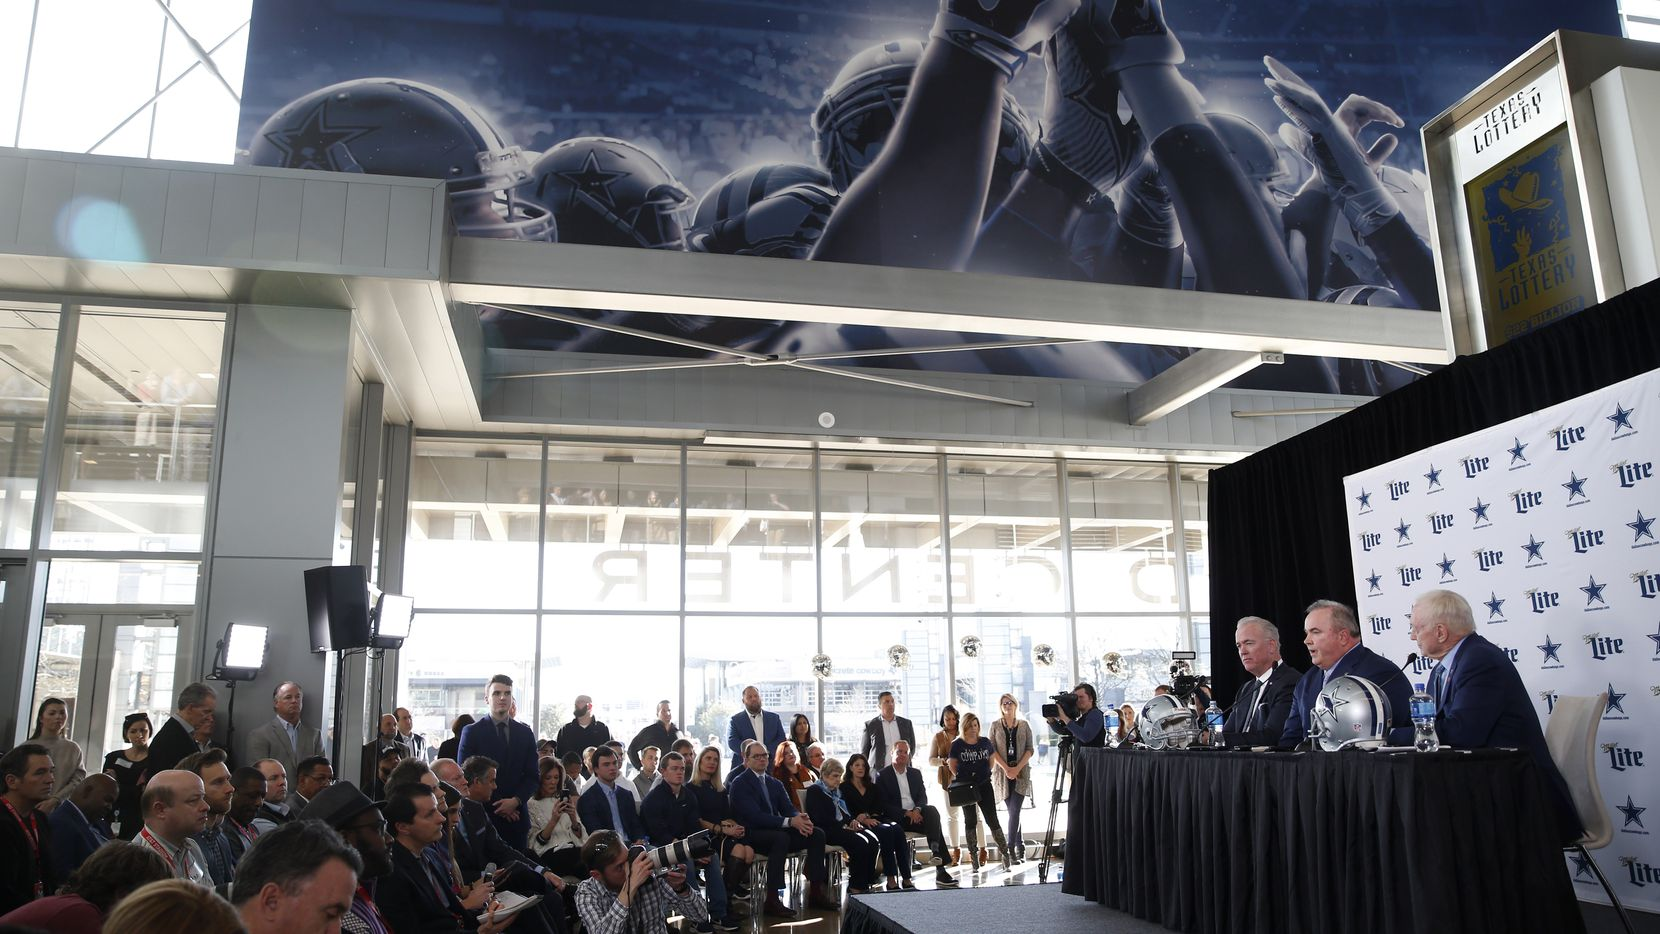 Dallas Cowboys new head coach Mike McCarthy speaks as Dallas Cowboys executive vice president Stephen Jones (left) and Dallas Cowboys owner and general manager Jerry Jones (right) listen during a press conference in the Ford Center at The Star in Frisco, on Wednesday, January 8, 2020.